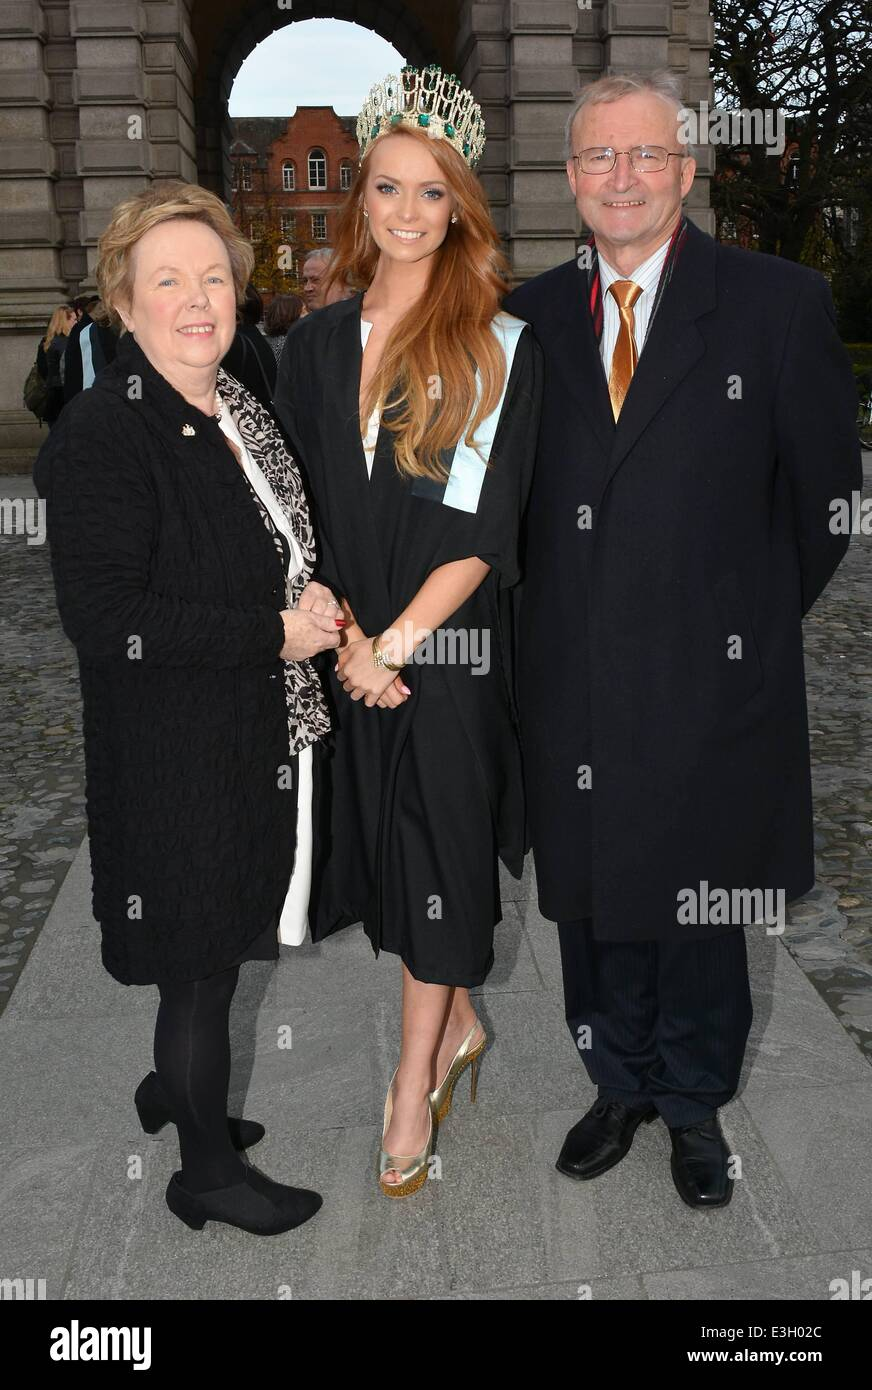 Miss Ireland 2013 Aoife Walsh graduates from Trinity College with a Post Grad in Education...  Featuring: Aoife Stock Photo